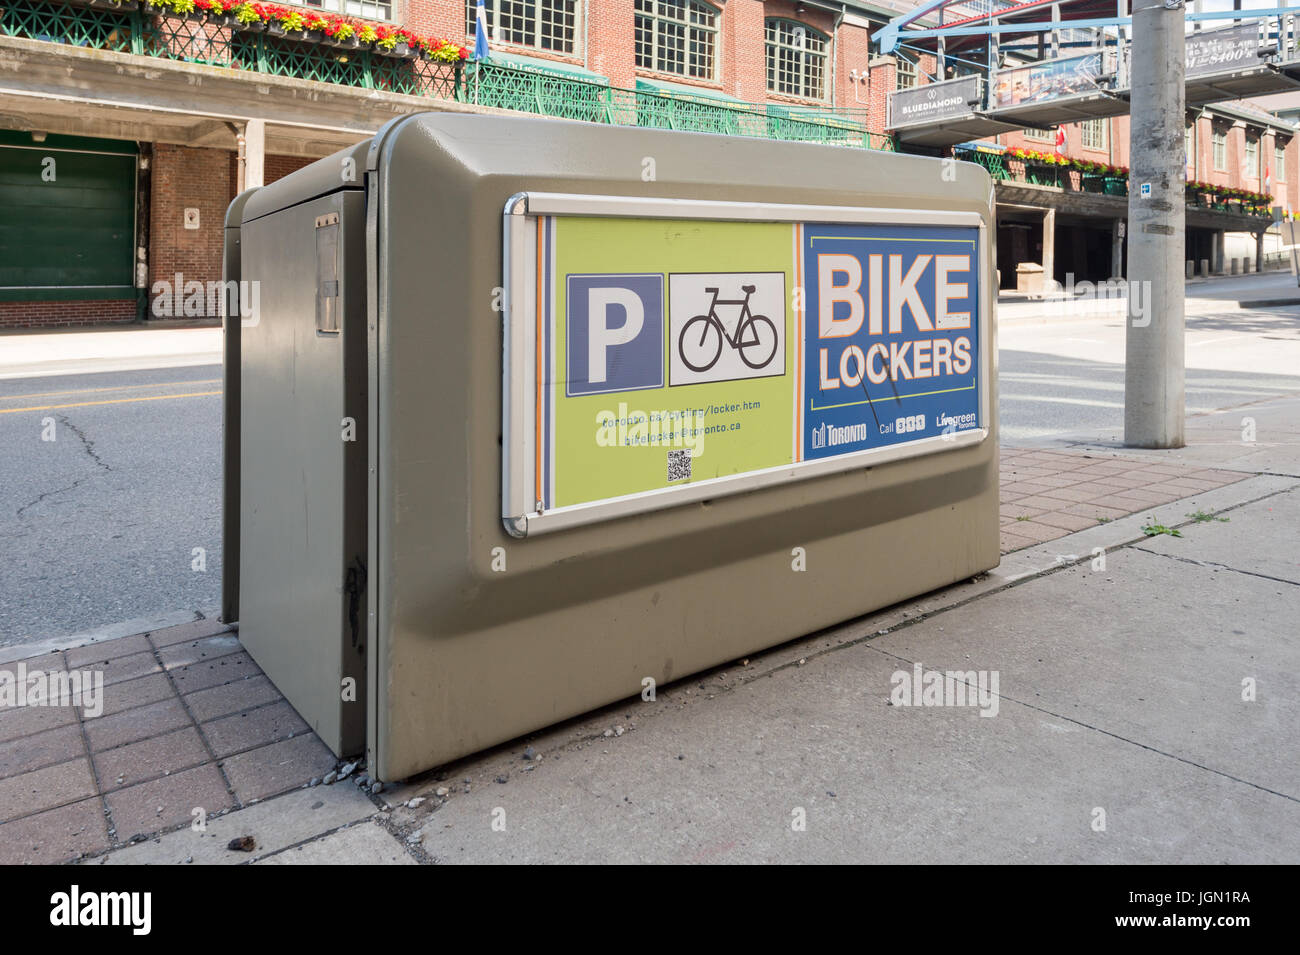 Toronto, Canada - 26 June 2017: Bicycle lockers provide secure bicycle parking in Toronto - Stock Image